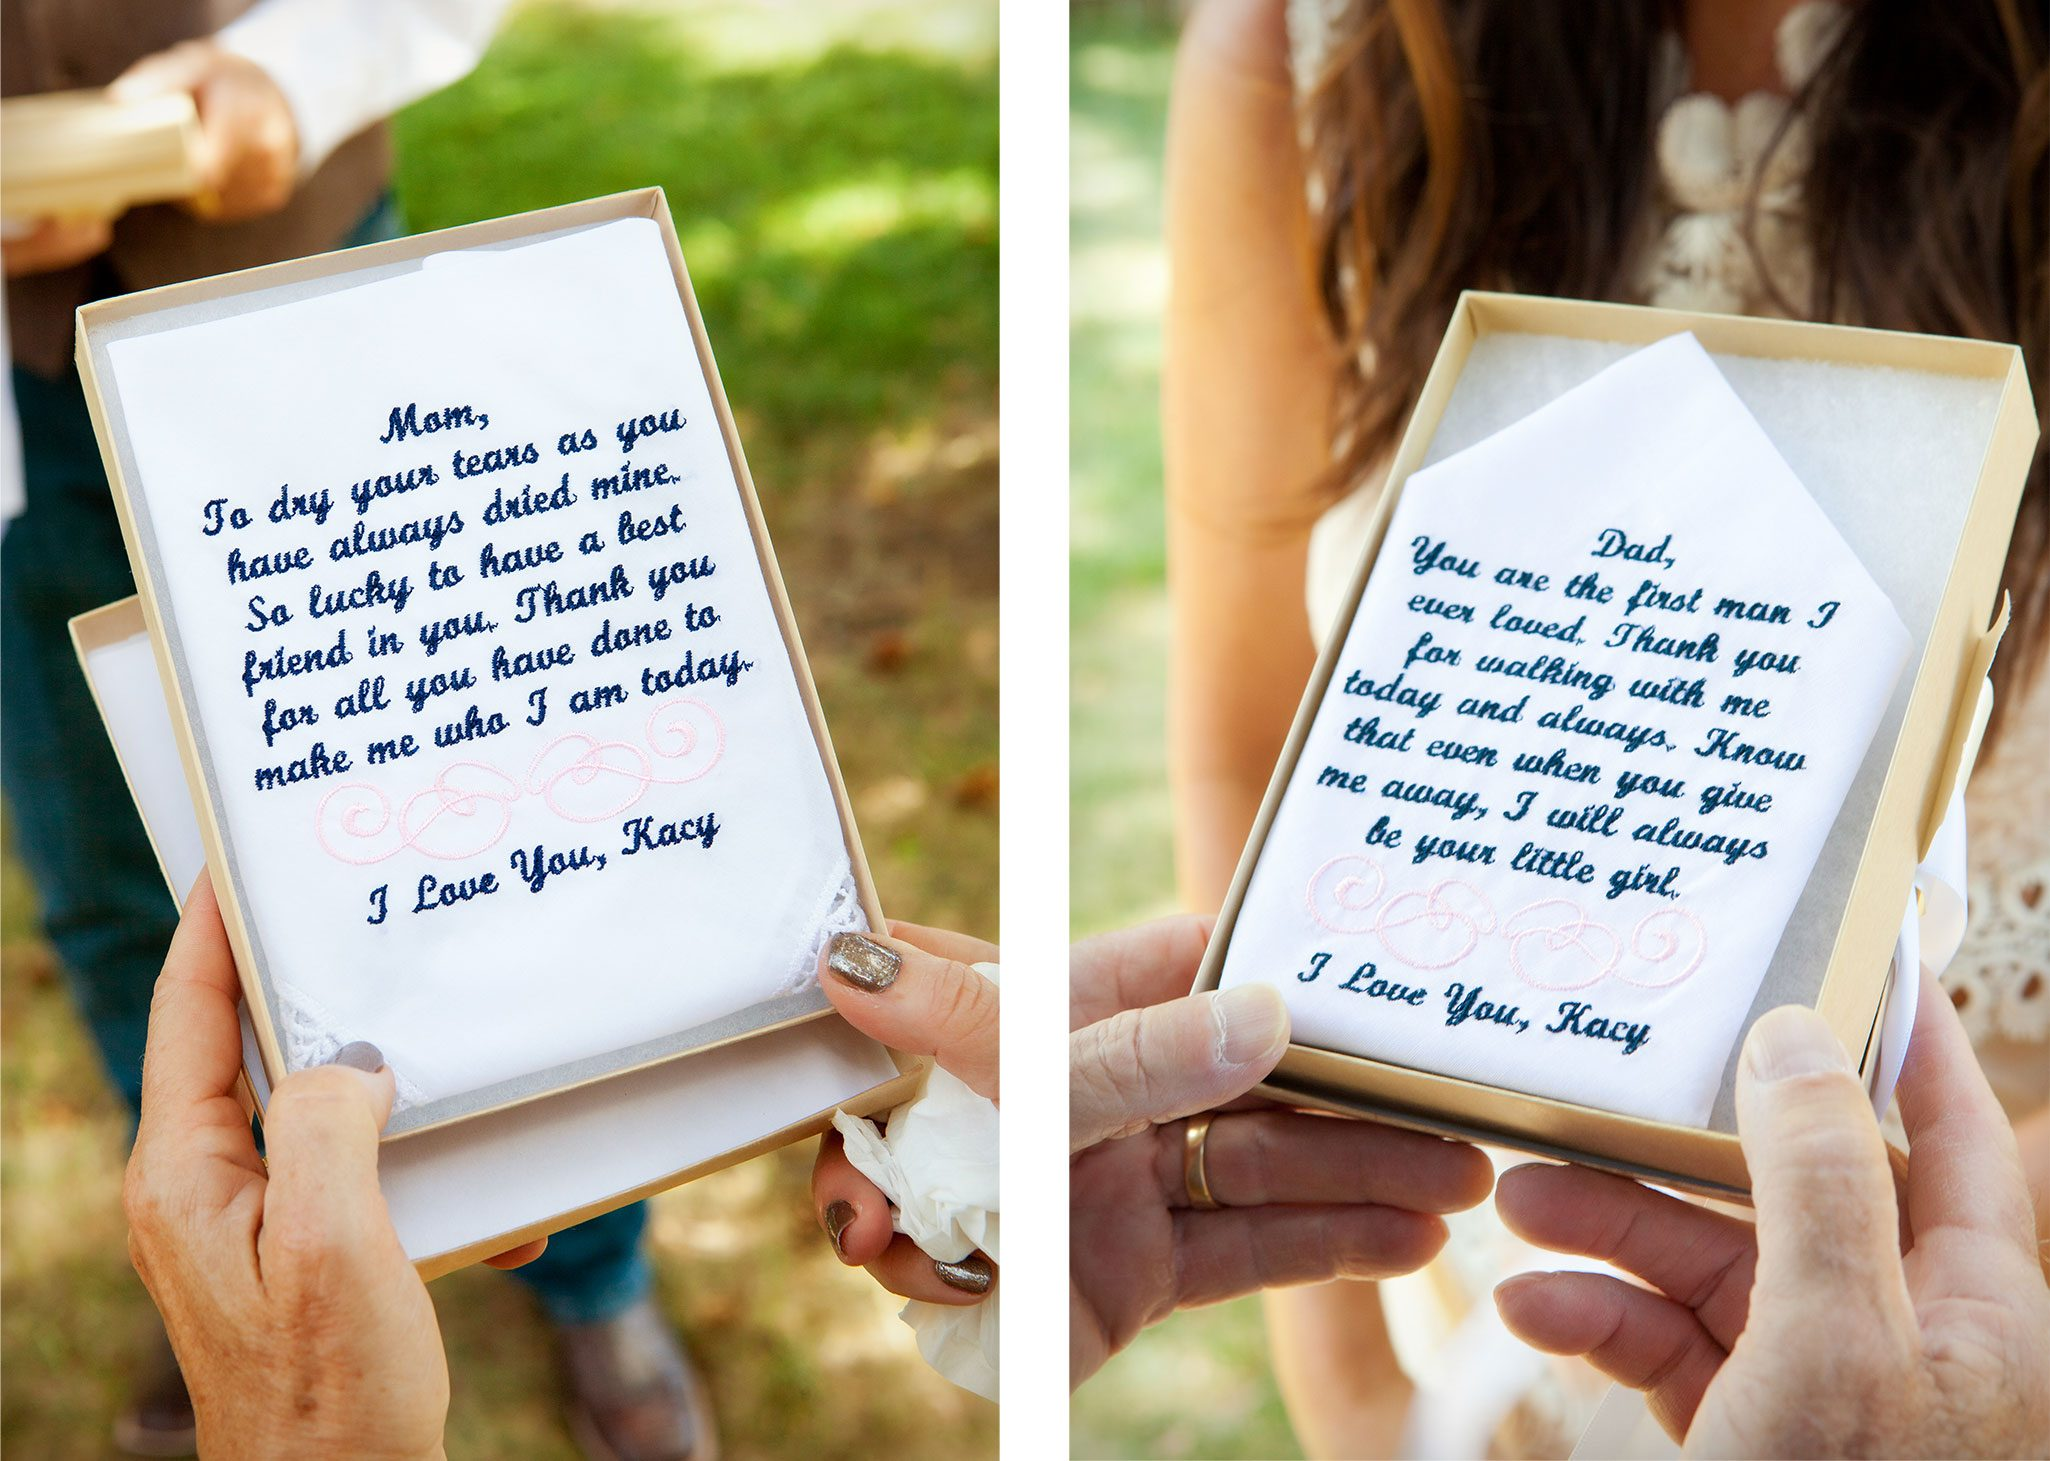 Embroidered Handkerchiefs for mom and dad from bride